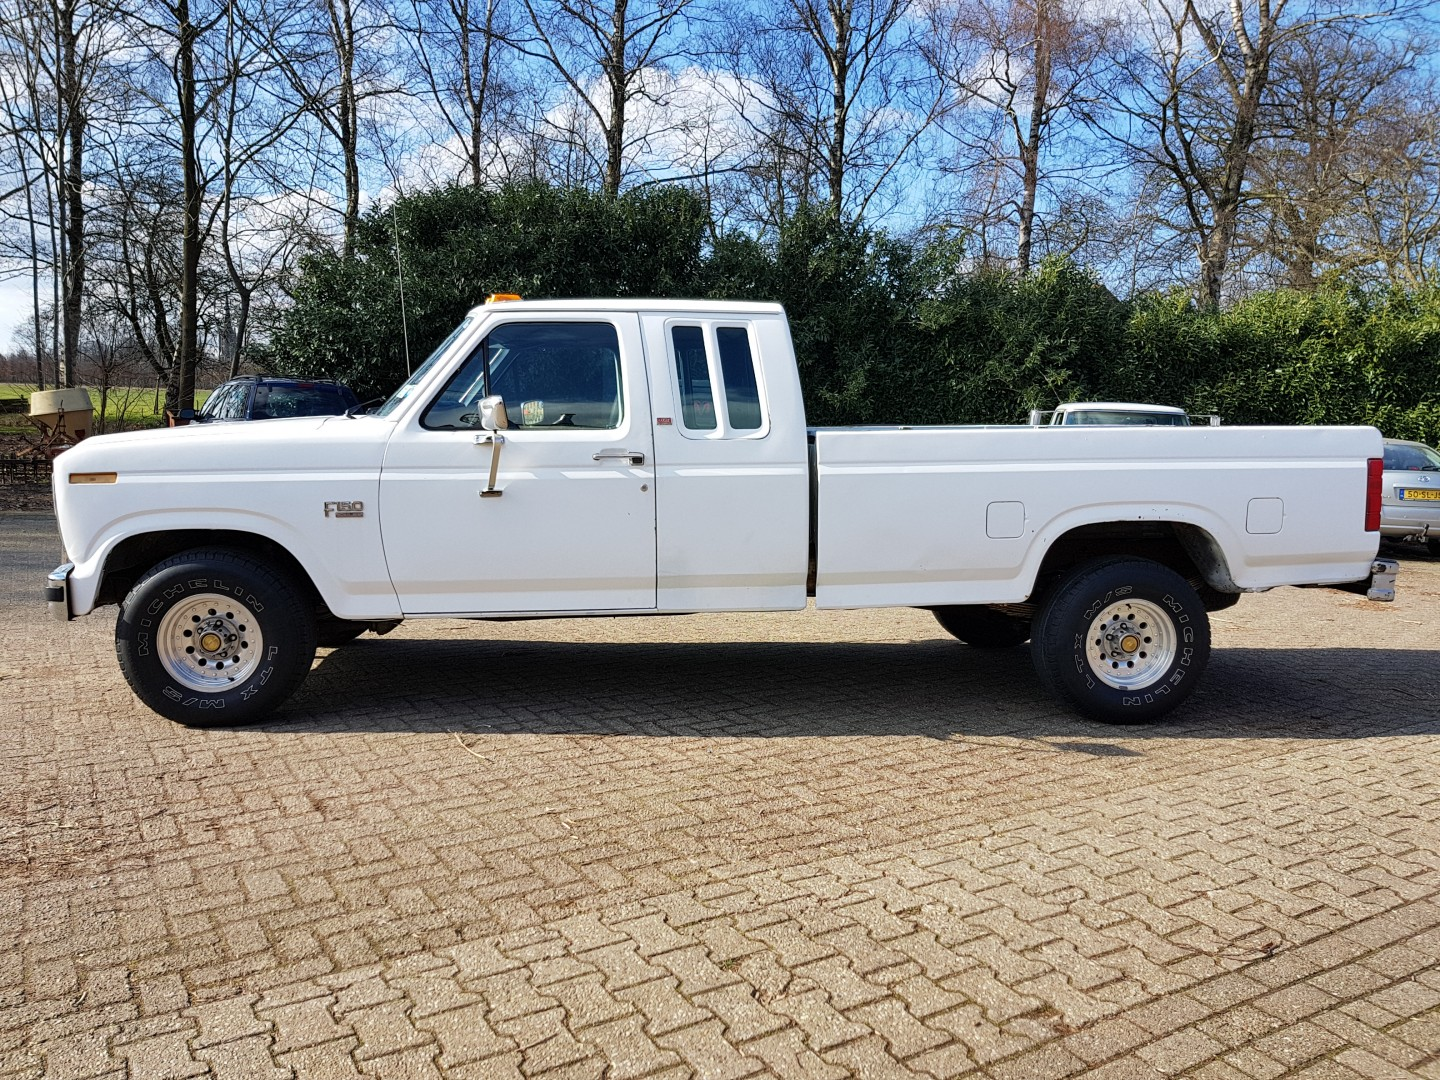 1986 Ford F150 Crew Cab With 351ci V8 Speed Monkey Cars 1960 To 1968 Automatic 13